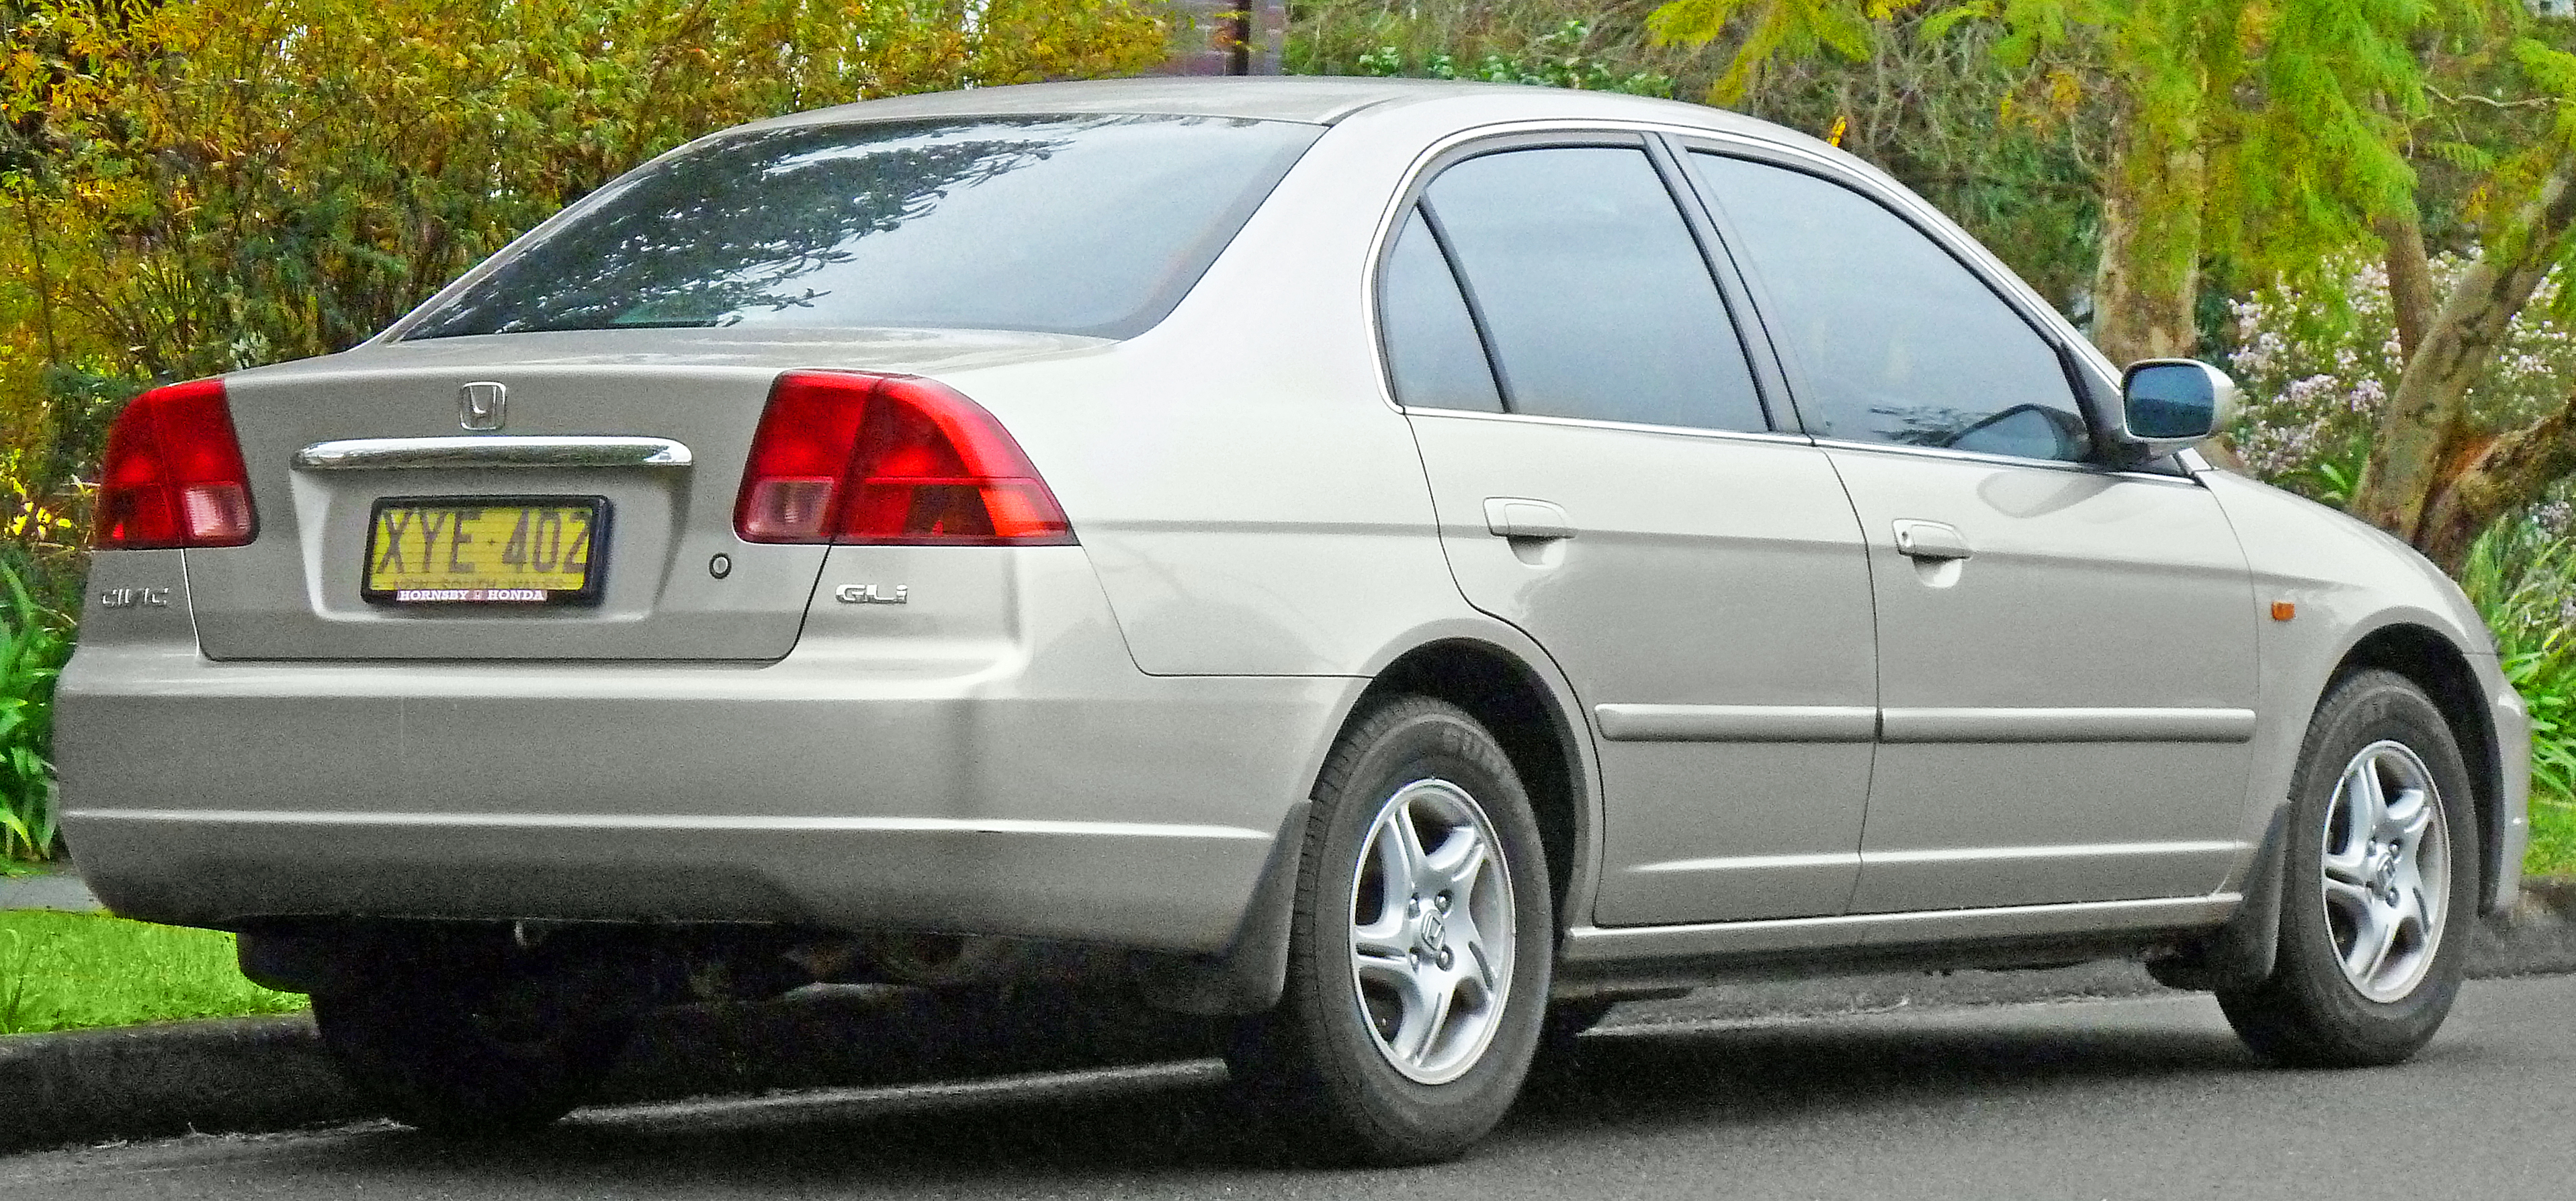 2002 Honda Civic  Information and photos  ZombieDrive